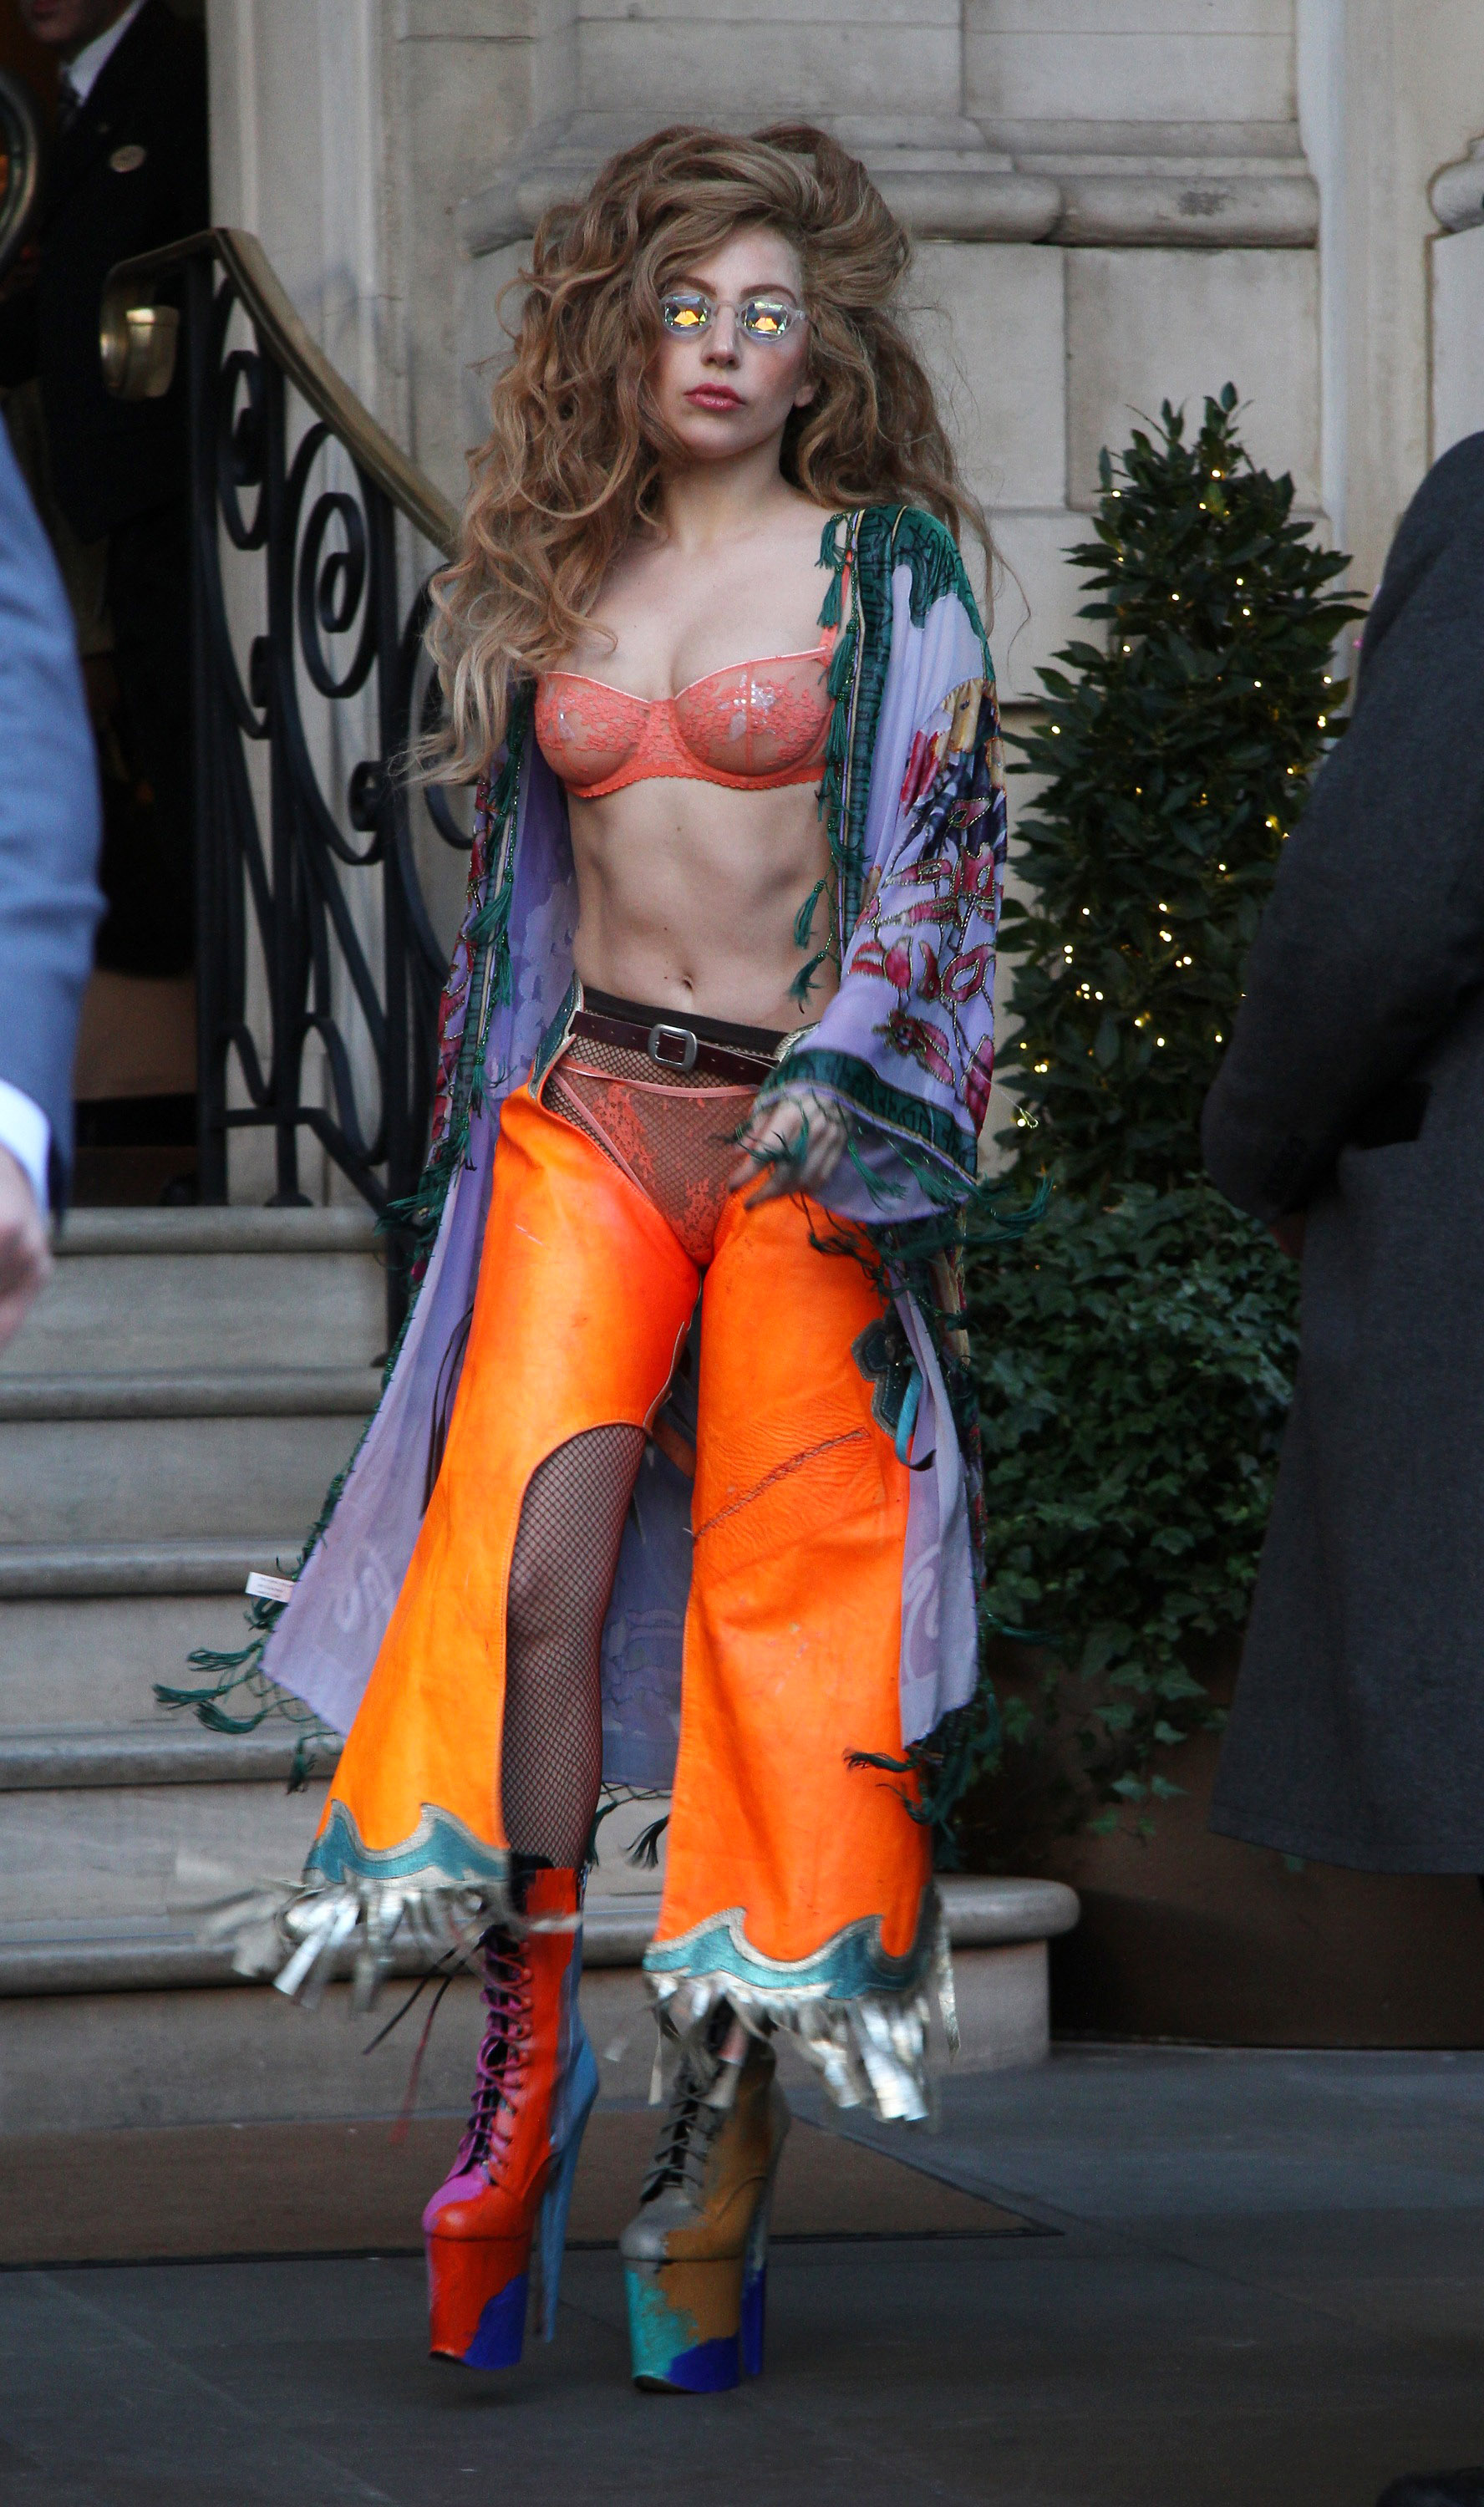 Lady Gaga Sightings In London - December 8, 2013